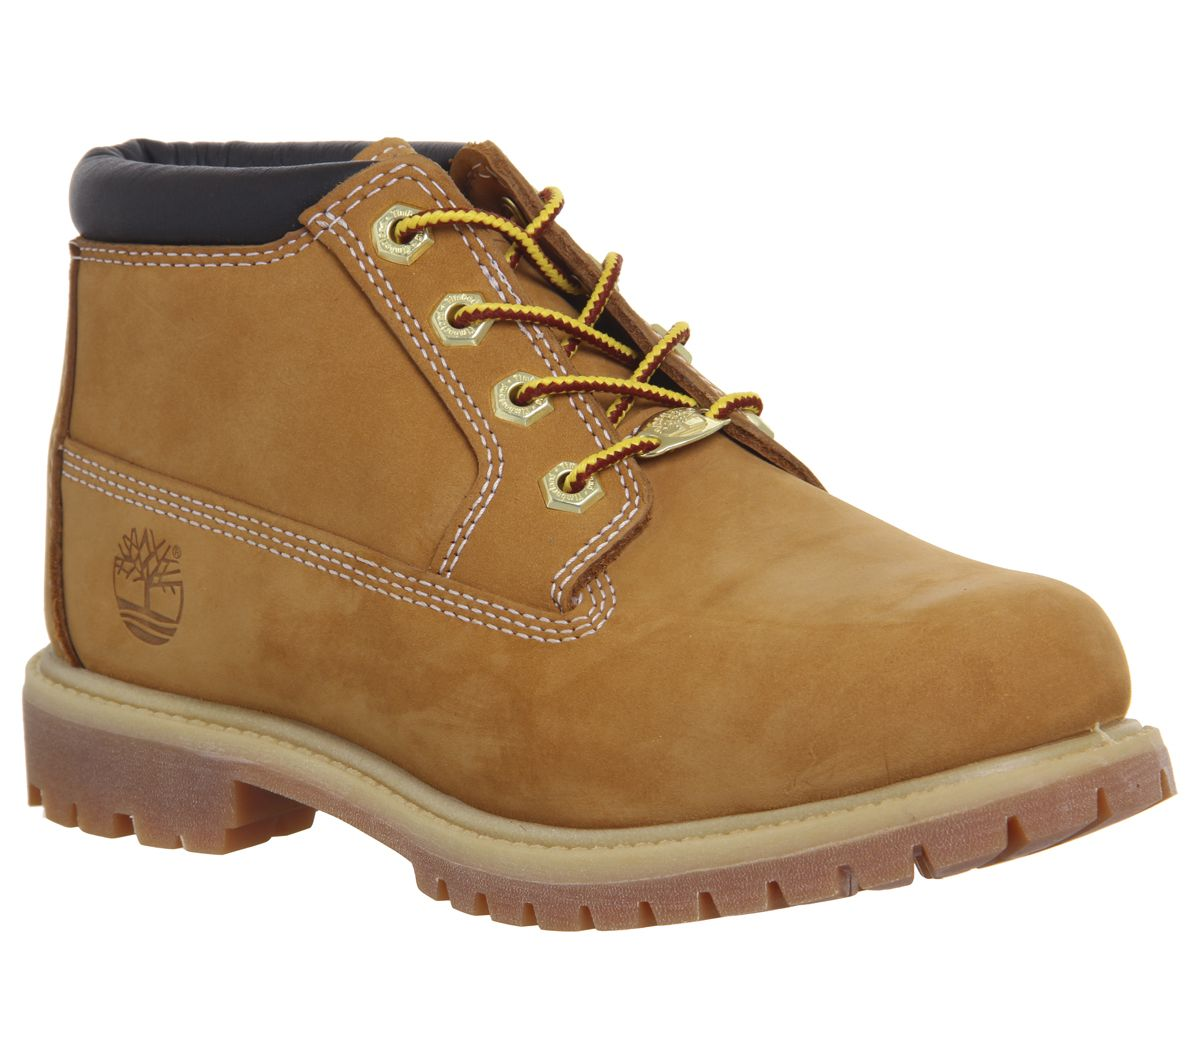 Details about Womens Timberland Nellie Chukka Double Waterproof Boots Wheat Nubuck Boots